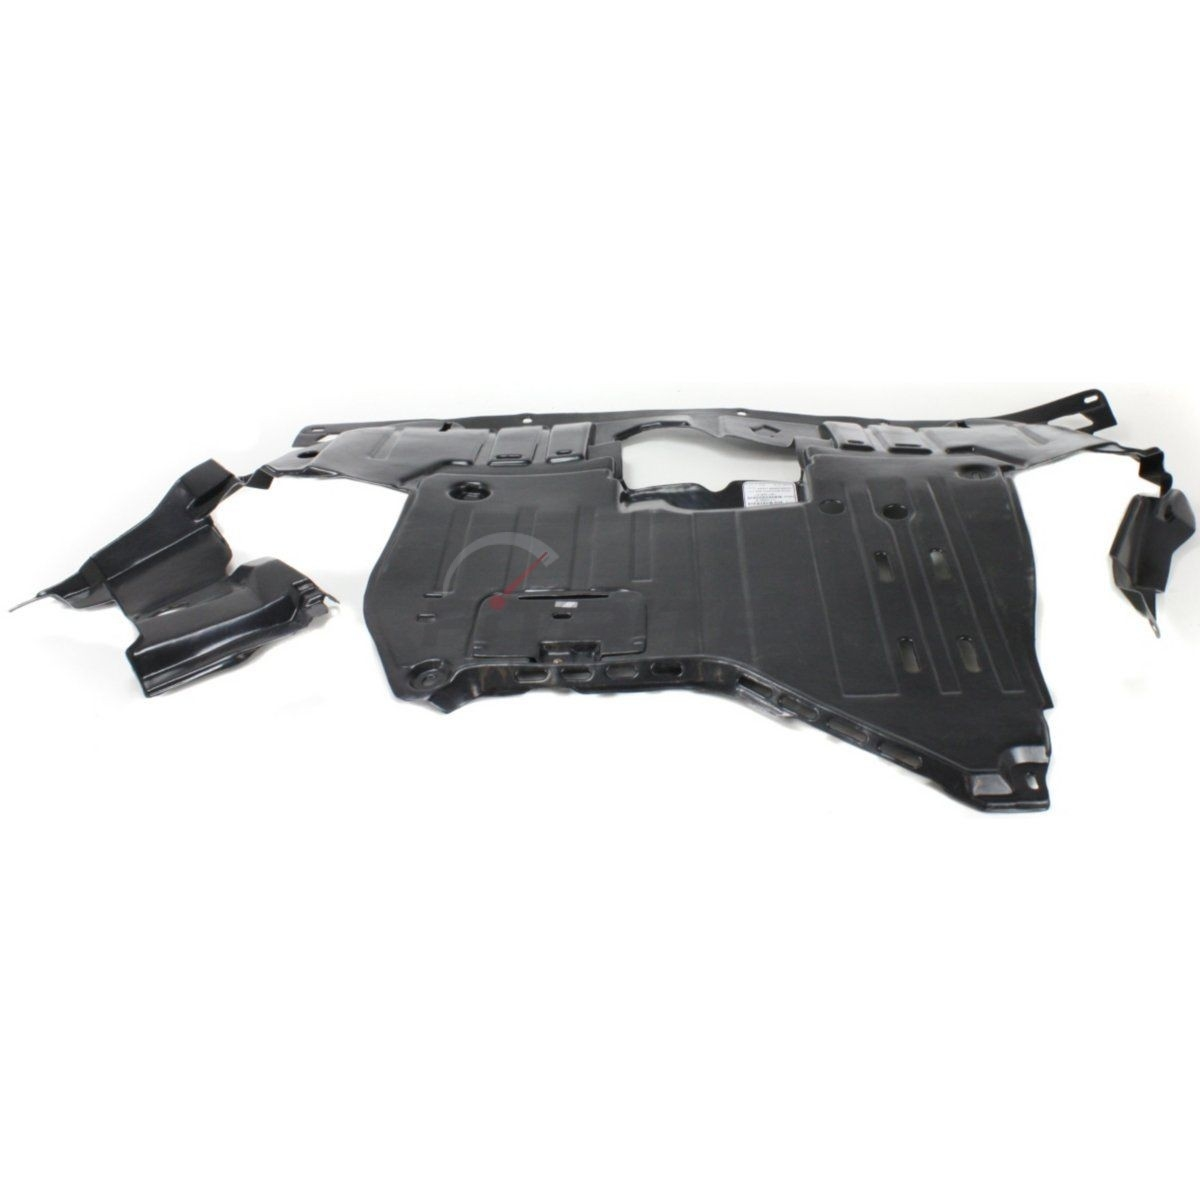 New Front Engine Splash Shield For 2004 Acura TSX ...